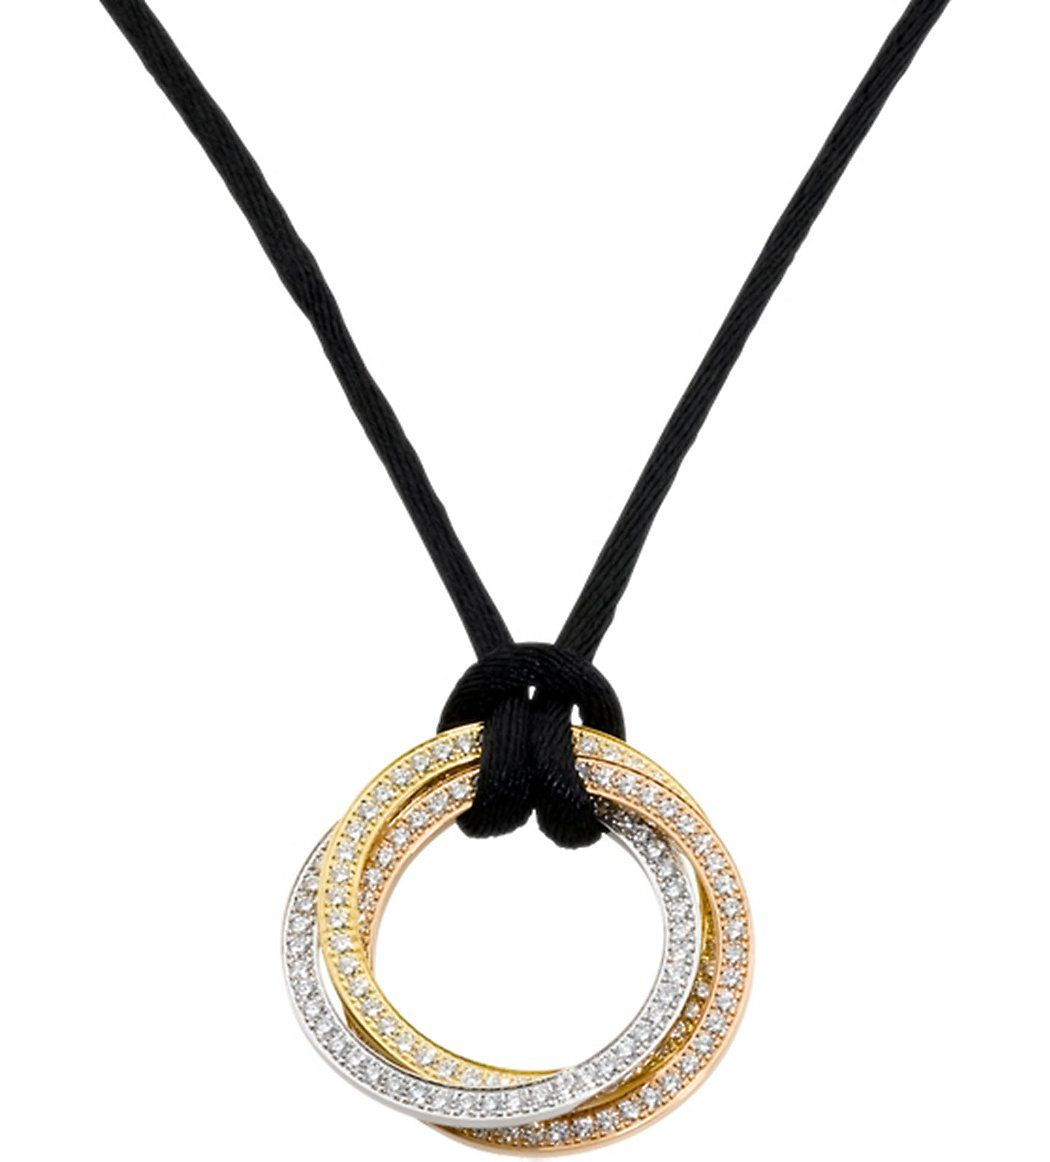 Cartier trinity 18ct gold and diamond pendant necklace 1400000 cartier trinity 18ct gold and diamond pendant necklace 1400000 aloadofball Images